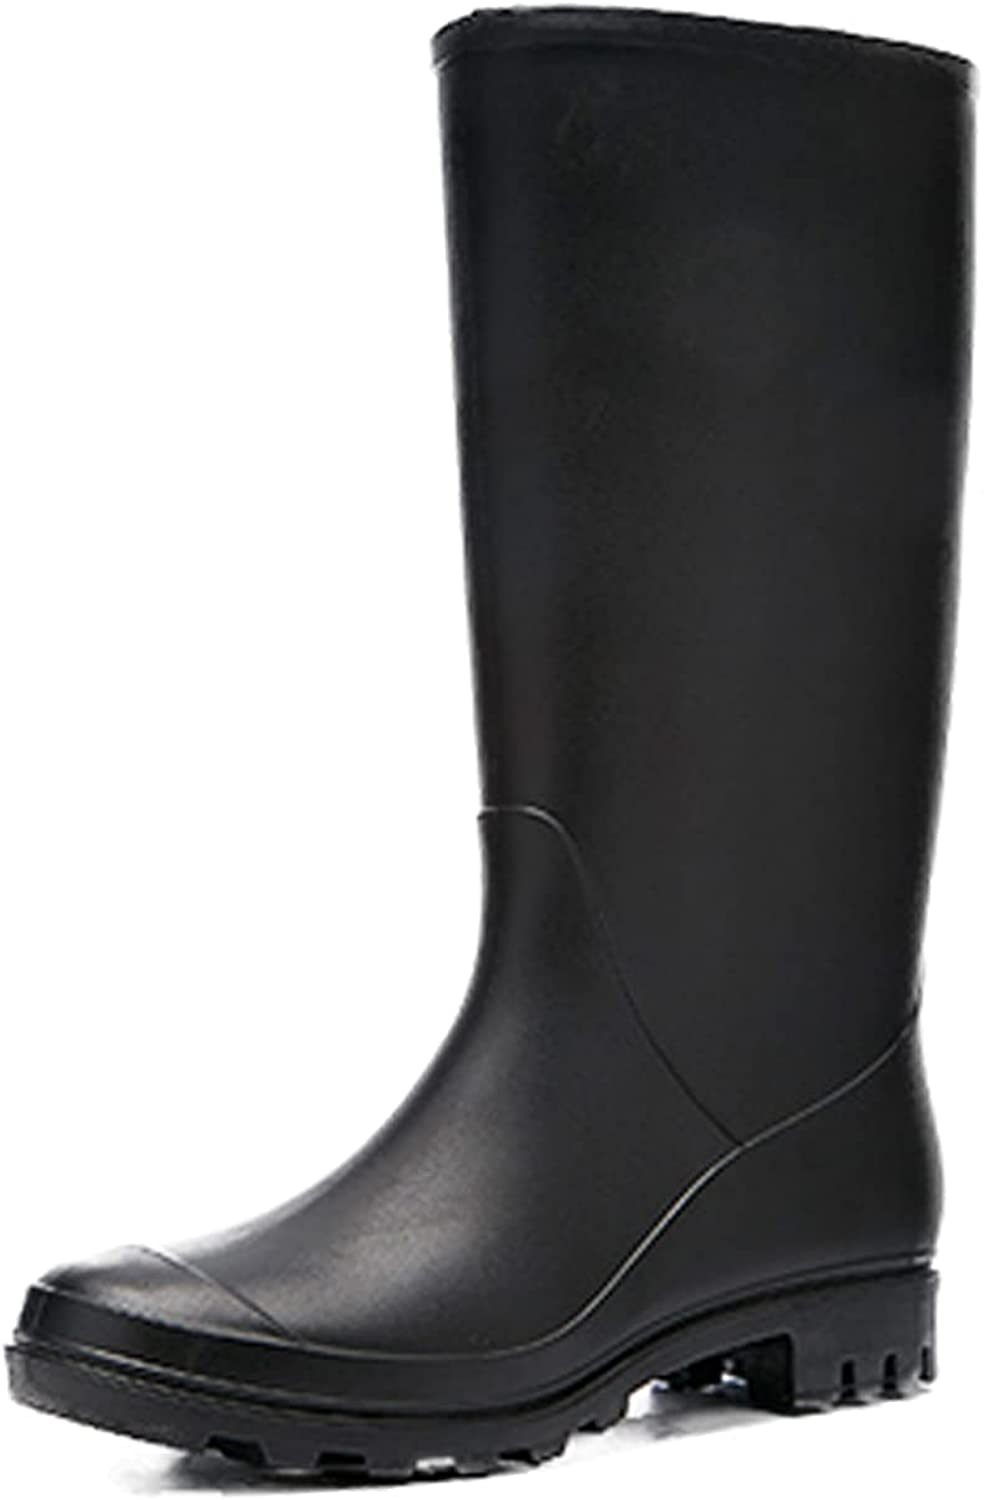 Rain Boots for Women Waterproof - Non-Slip Rubber Boots Comfortable Easy Wash Garden Boots Solid Mid-Calf Rainboots Prevent Slippery and Durable Outdoor Work Shoes